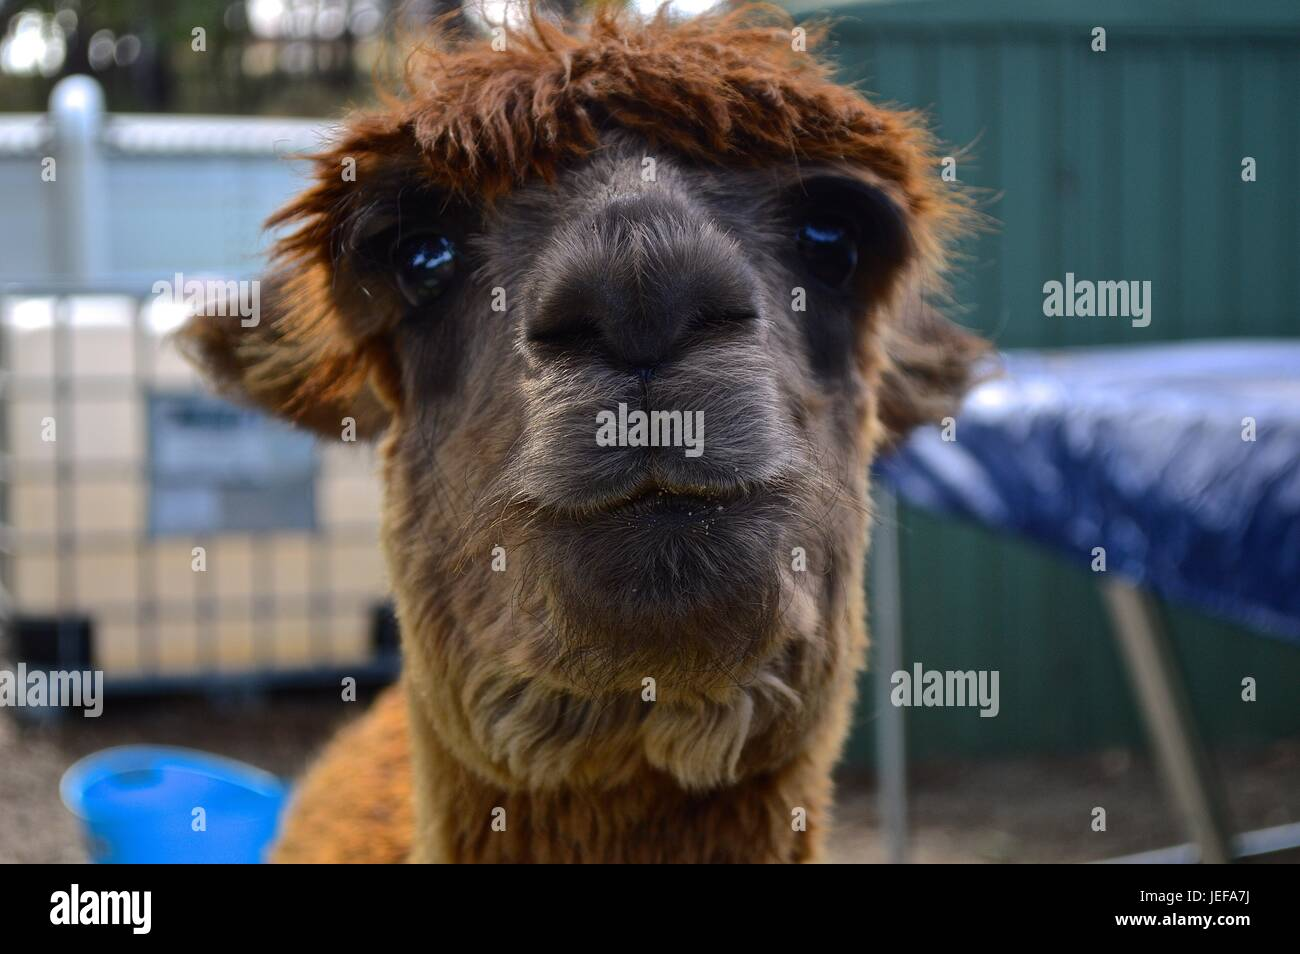 Brown suri alpaca face - Stock Image